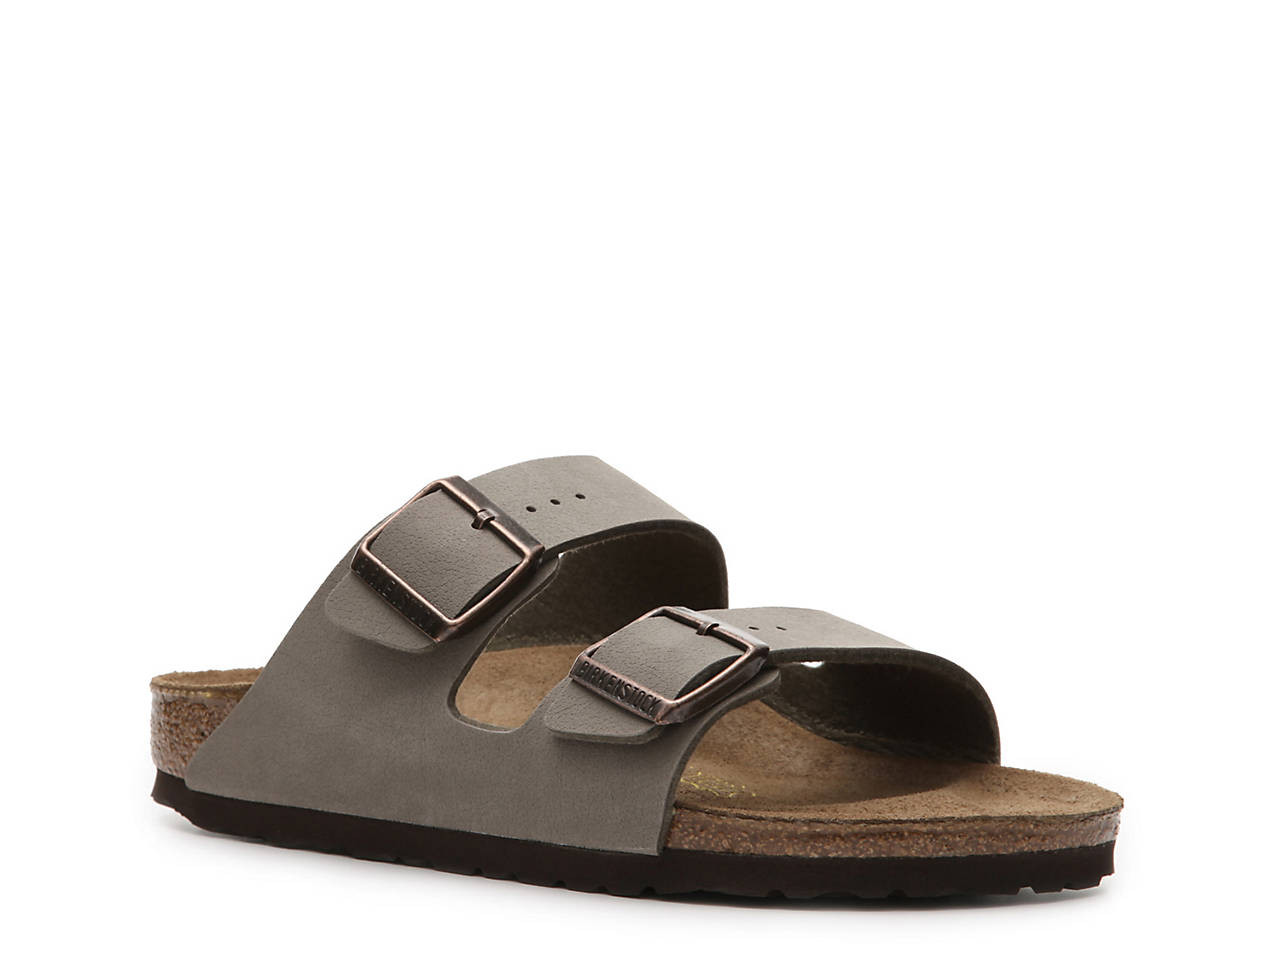 detailed look c7799 70ddb Birkenstock Sandals, Shoes & Slides | Free Shipping | DSW